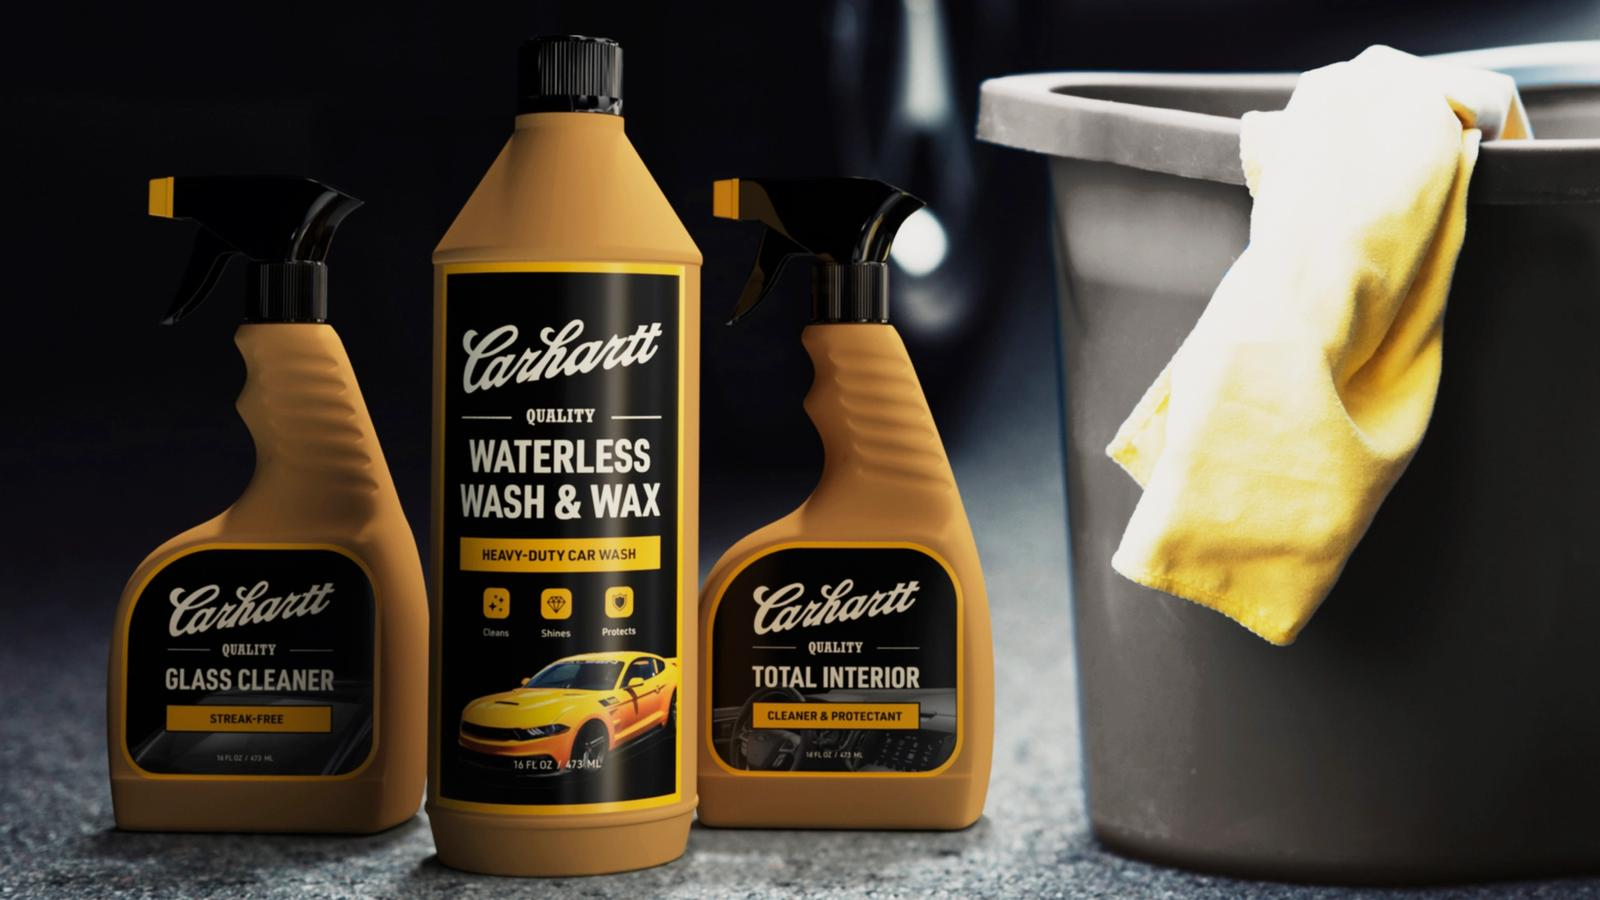 Carhartt Car Wash Products // Packaging